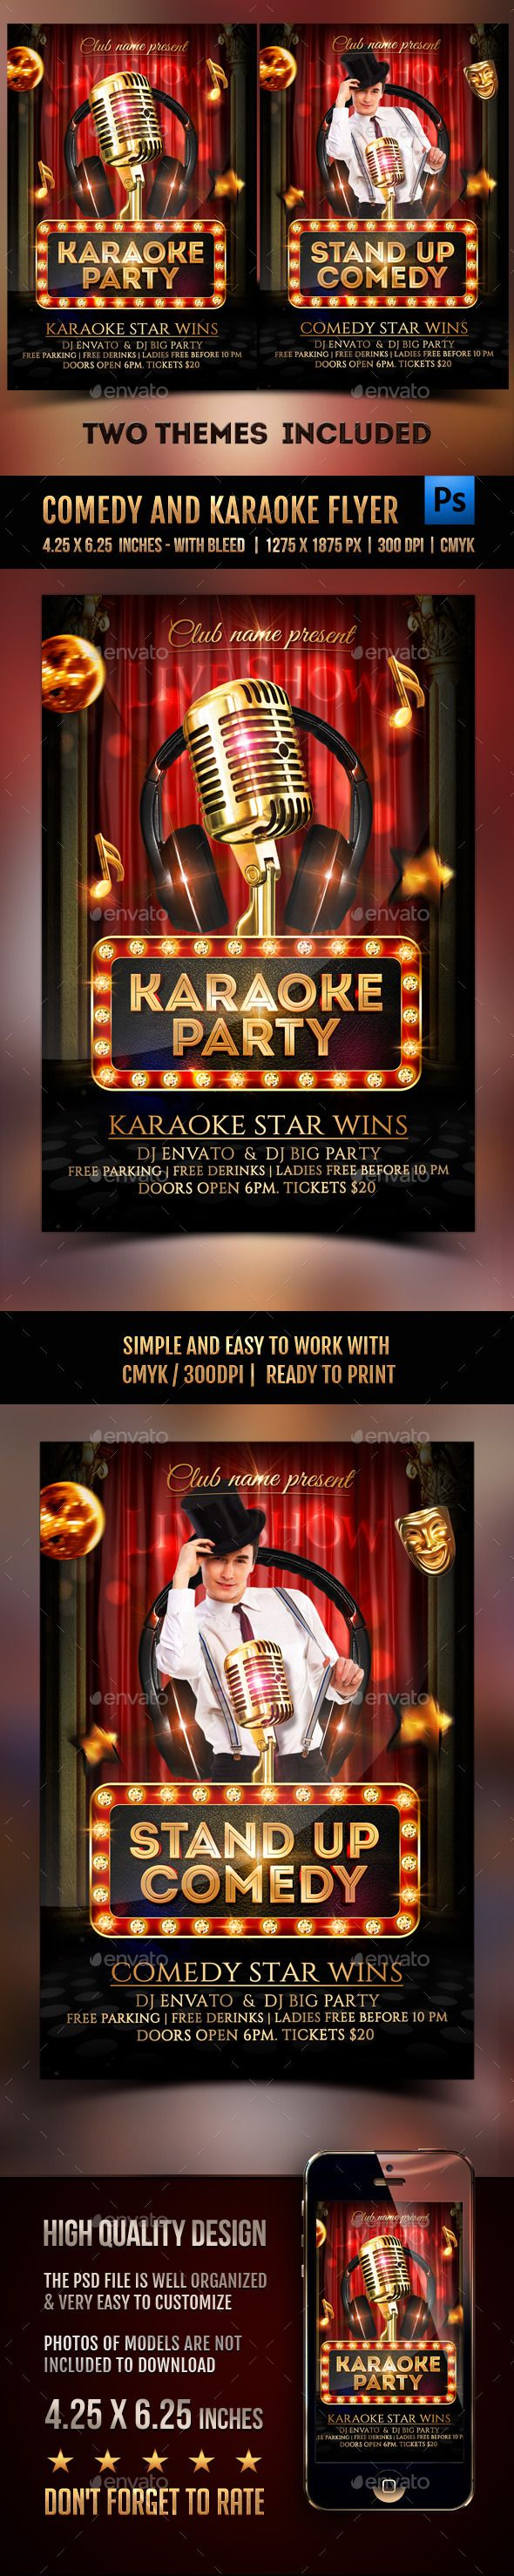 Comedy and Karaoke Party Flyer Template PSD #design Download: http://graphicriver.net/item/comedy-and-karaoke-party-flyer/12873540?ref=ksioks